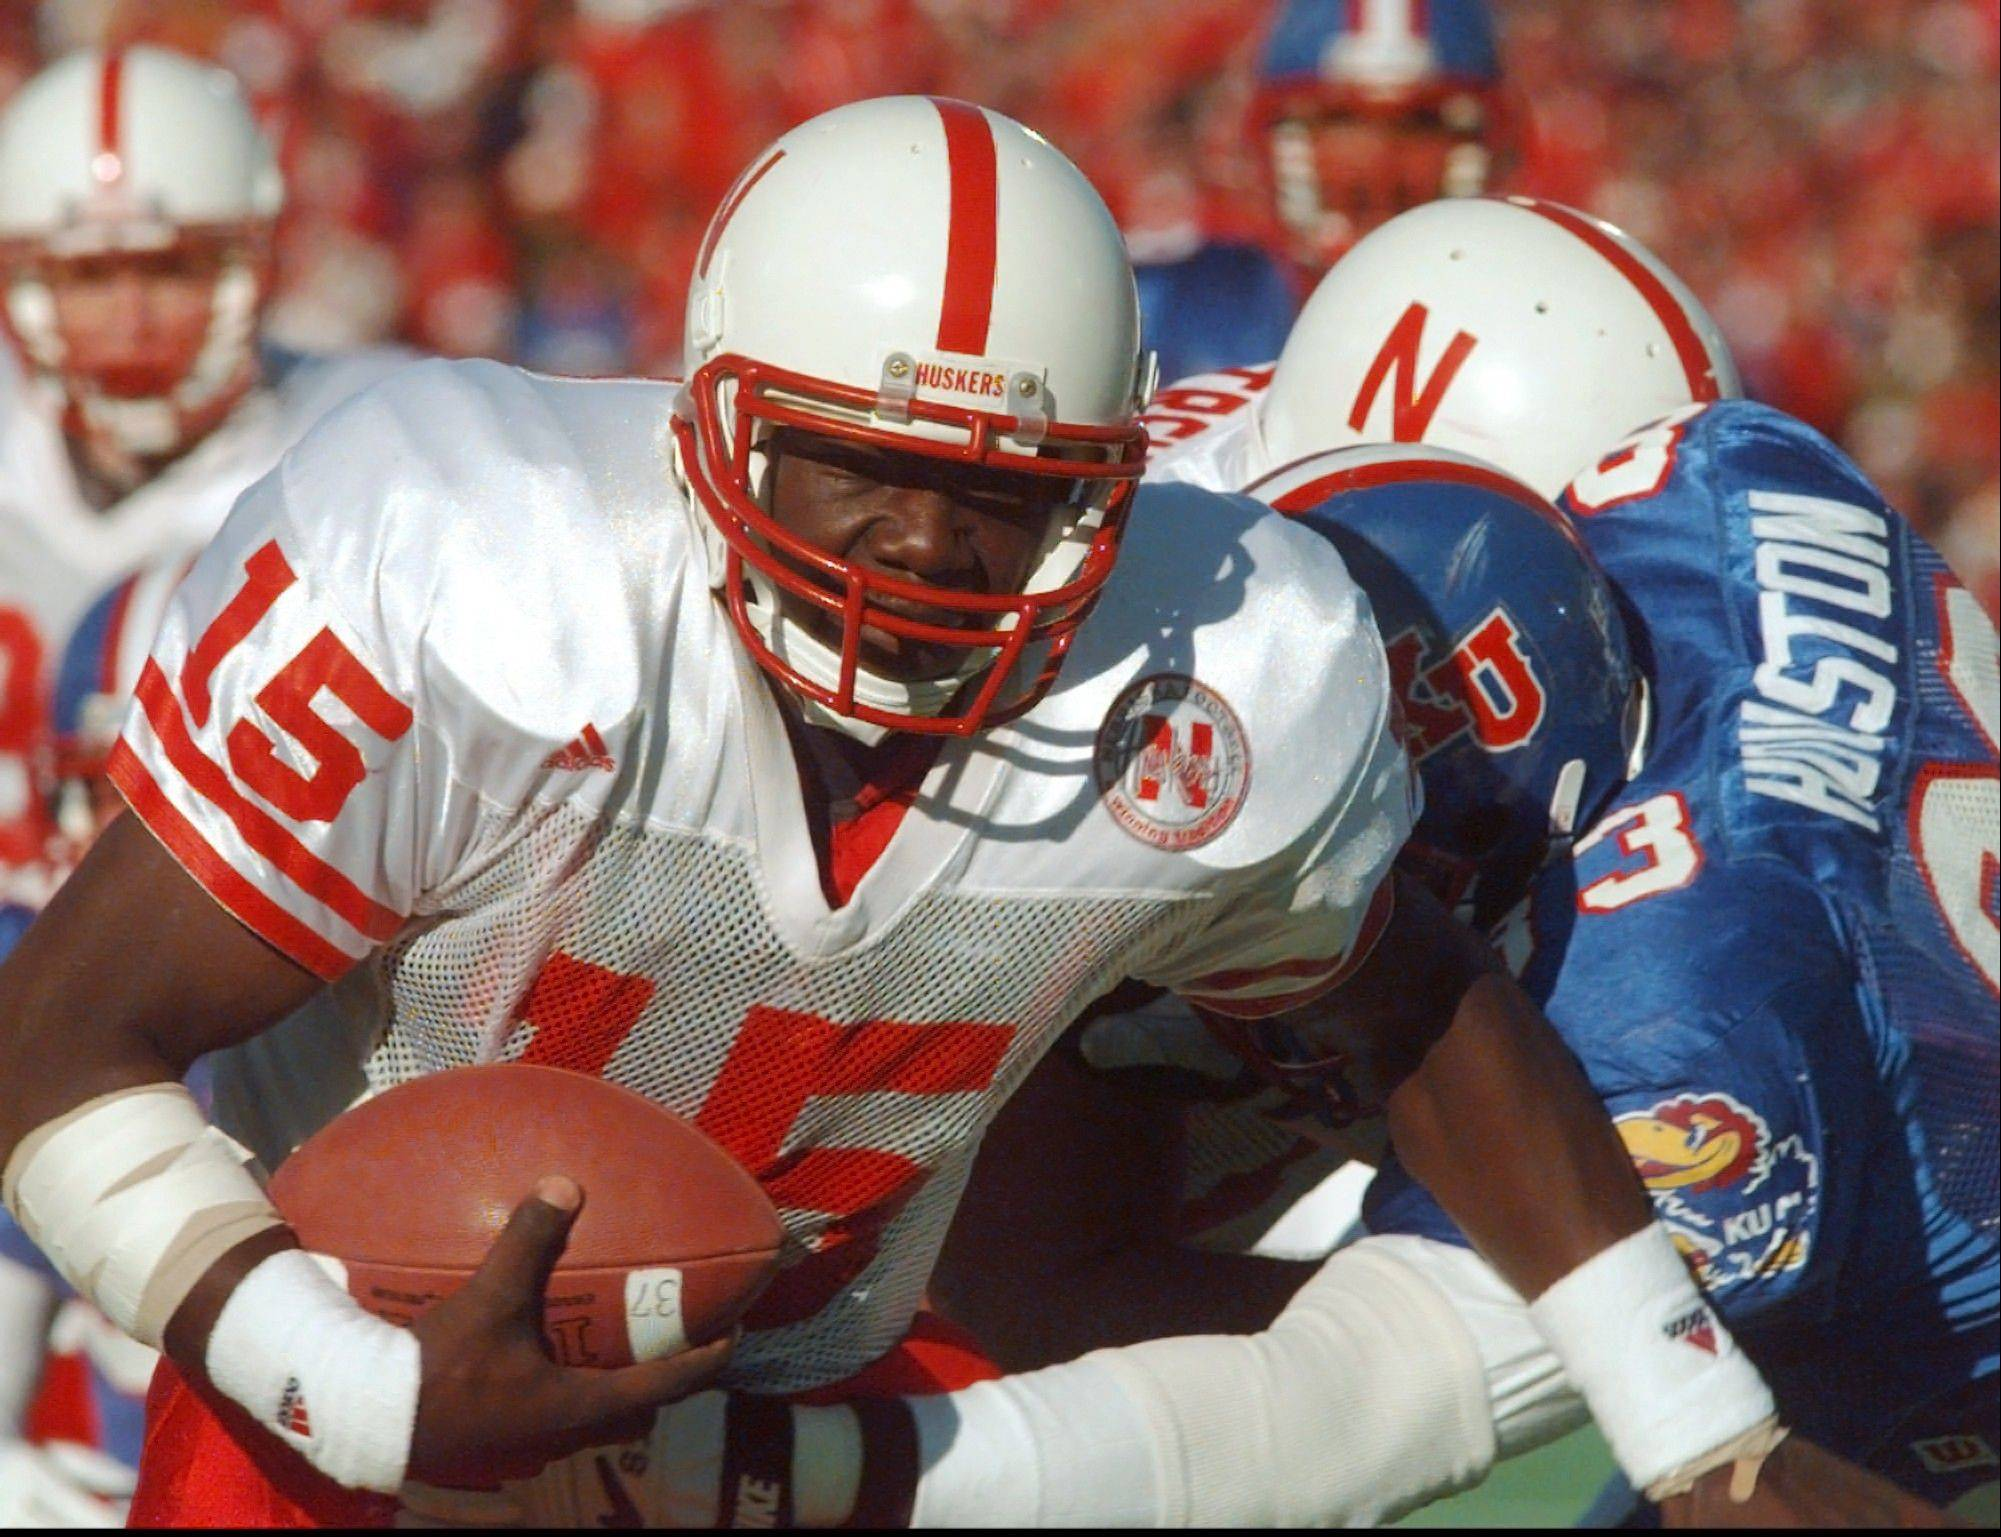 FILE - In this Nov. 11, 1995, file photo, Nebraska quarterback Tommie Frazier (15) runs to inside the one-yard line as Kansas defensive tackle Dewey Houston (83) tries to stop his progress during the first quarter of an NCAA college football game in Lawrence, Kan. Frazier was selected to the College Football Hall of Fame on Tuesday, May 7, 2013.